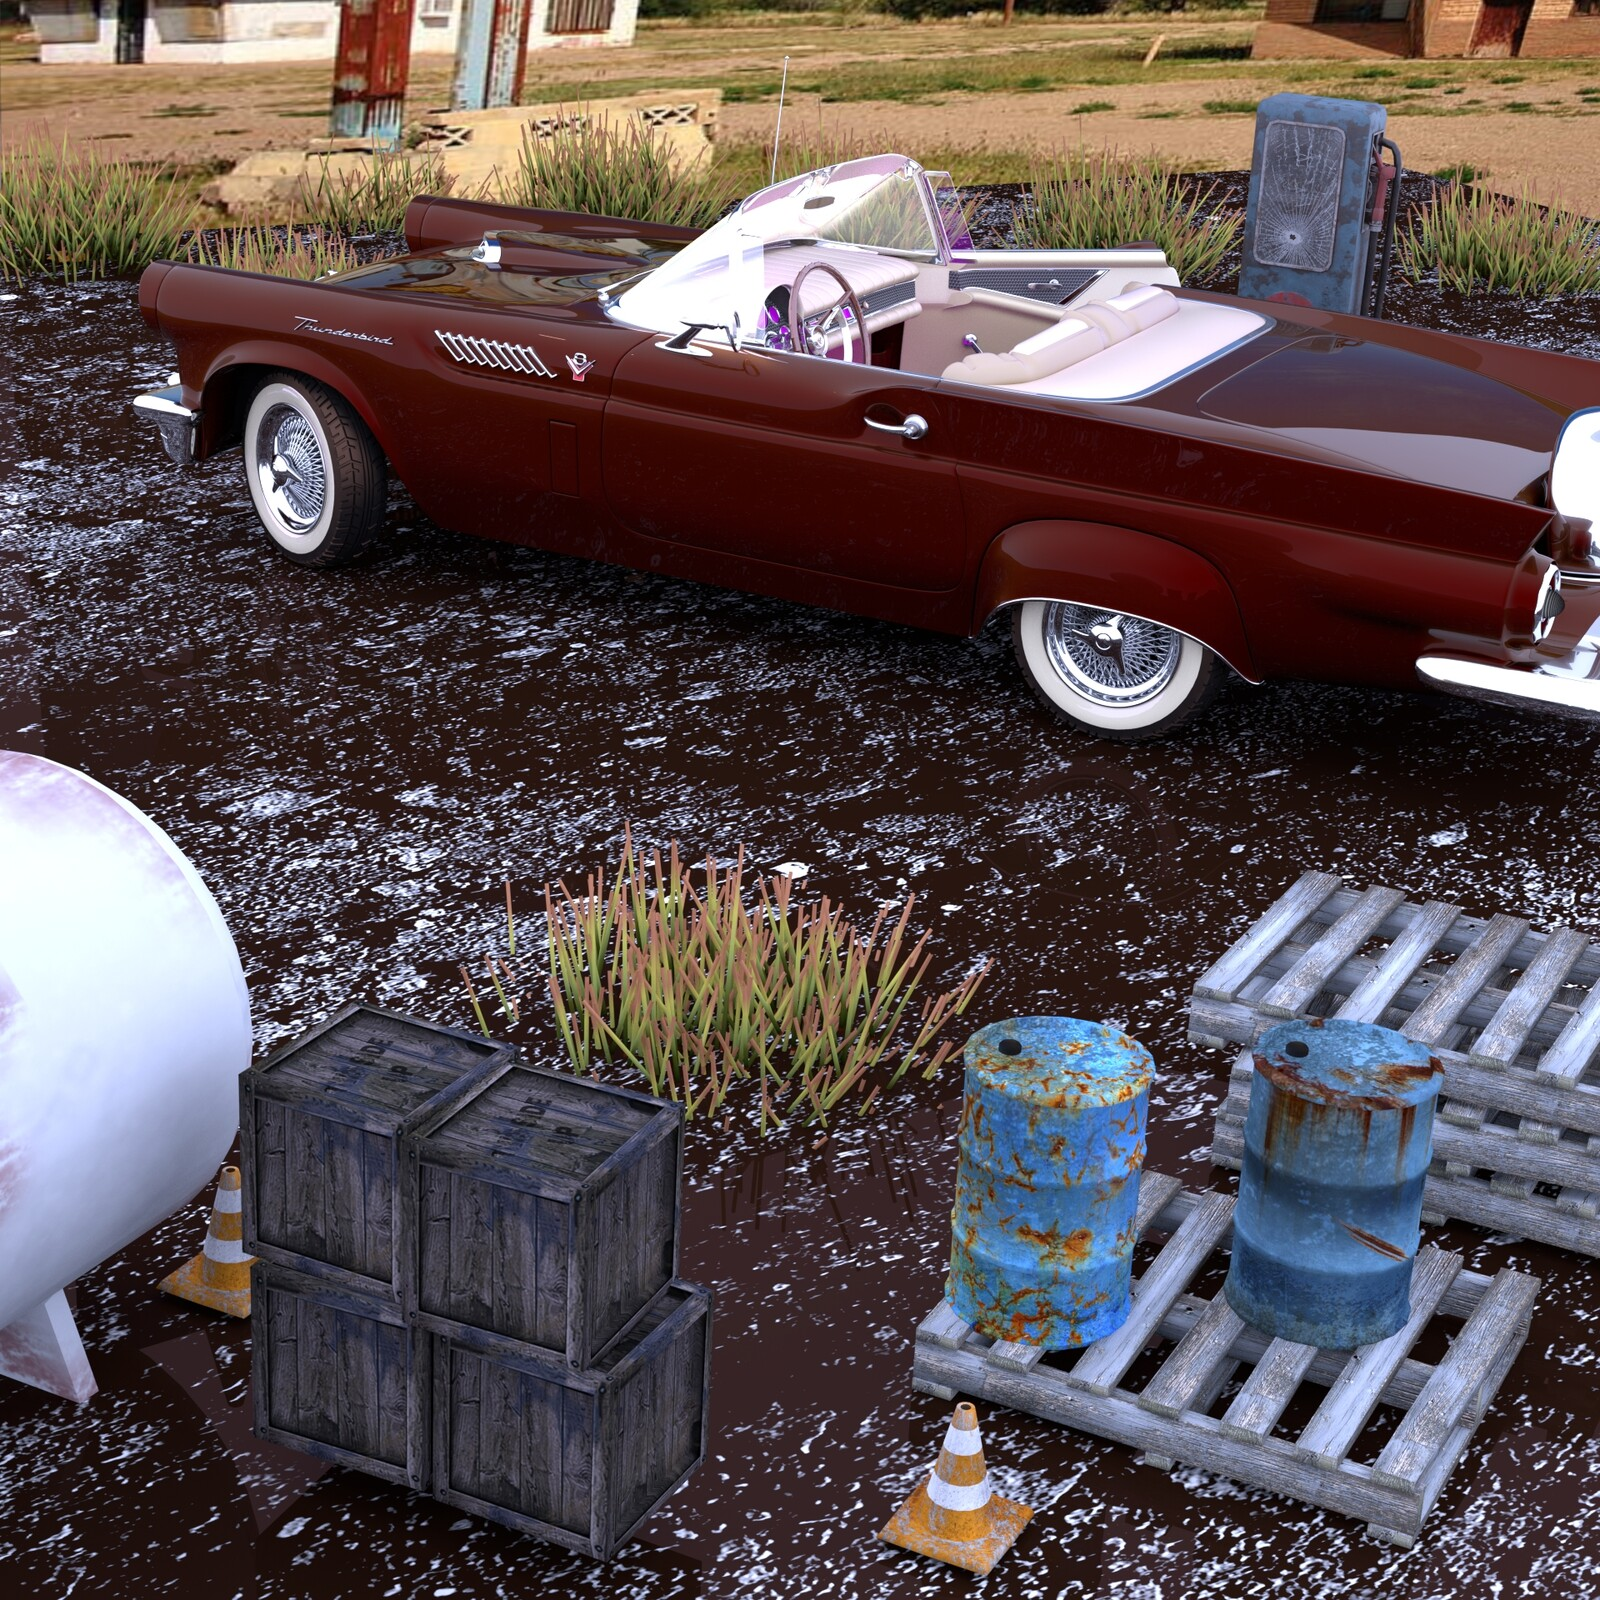 Thunderbird classic car and rusted things